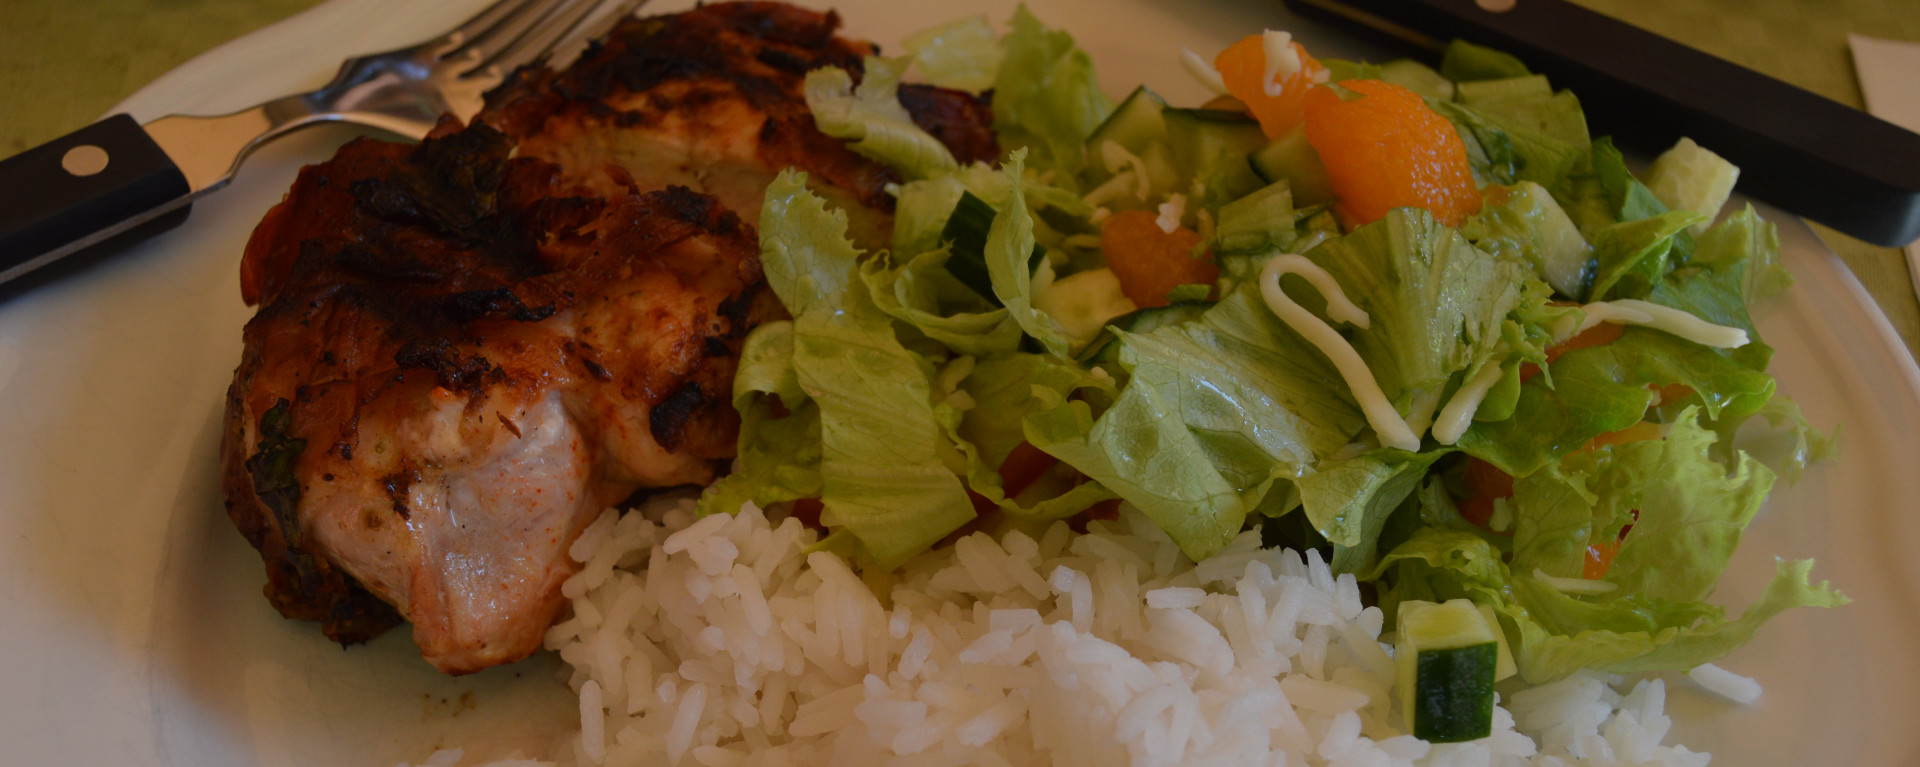 Chefnorway's Barbecue Chicken